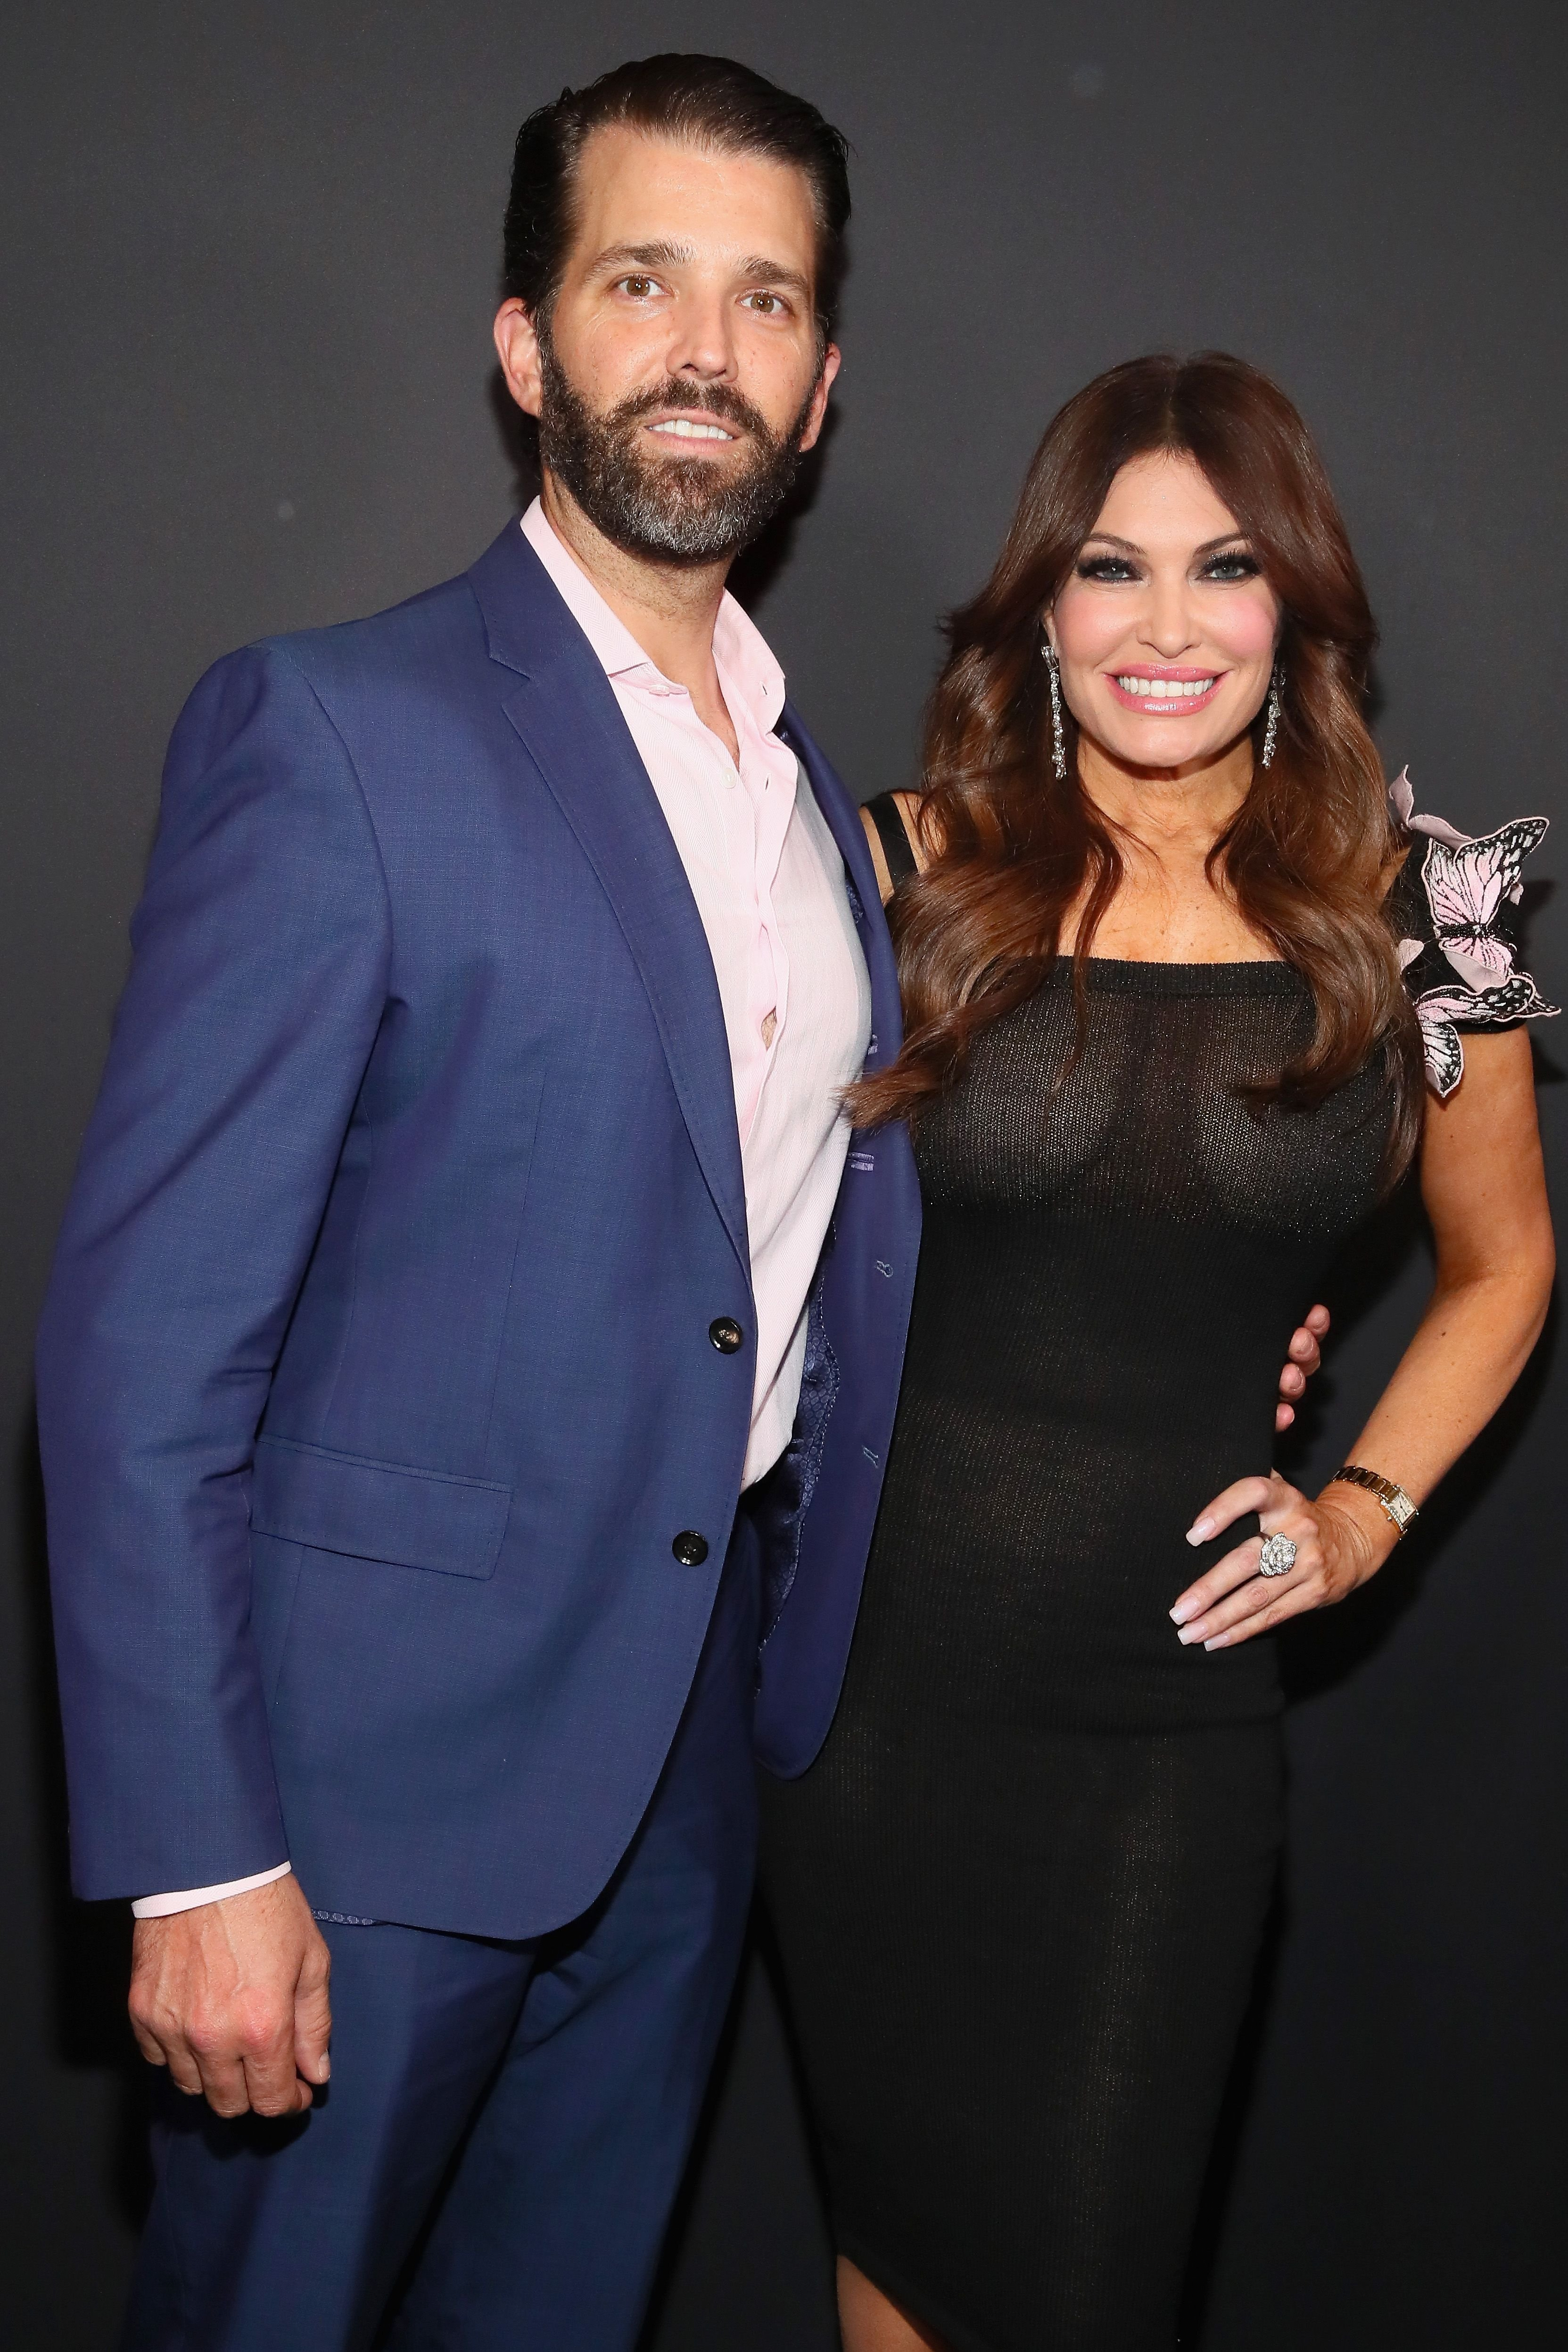 Kimberly Guilfoyle and Donald Trump Jr posing backstage for the Zang Toi fashion show during the New York Fashion Week at Spring Studios in New York City | Photo: Astrid Stawiarz/Getty Images for NYFW: The Shows